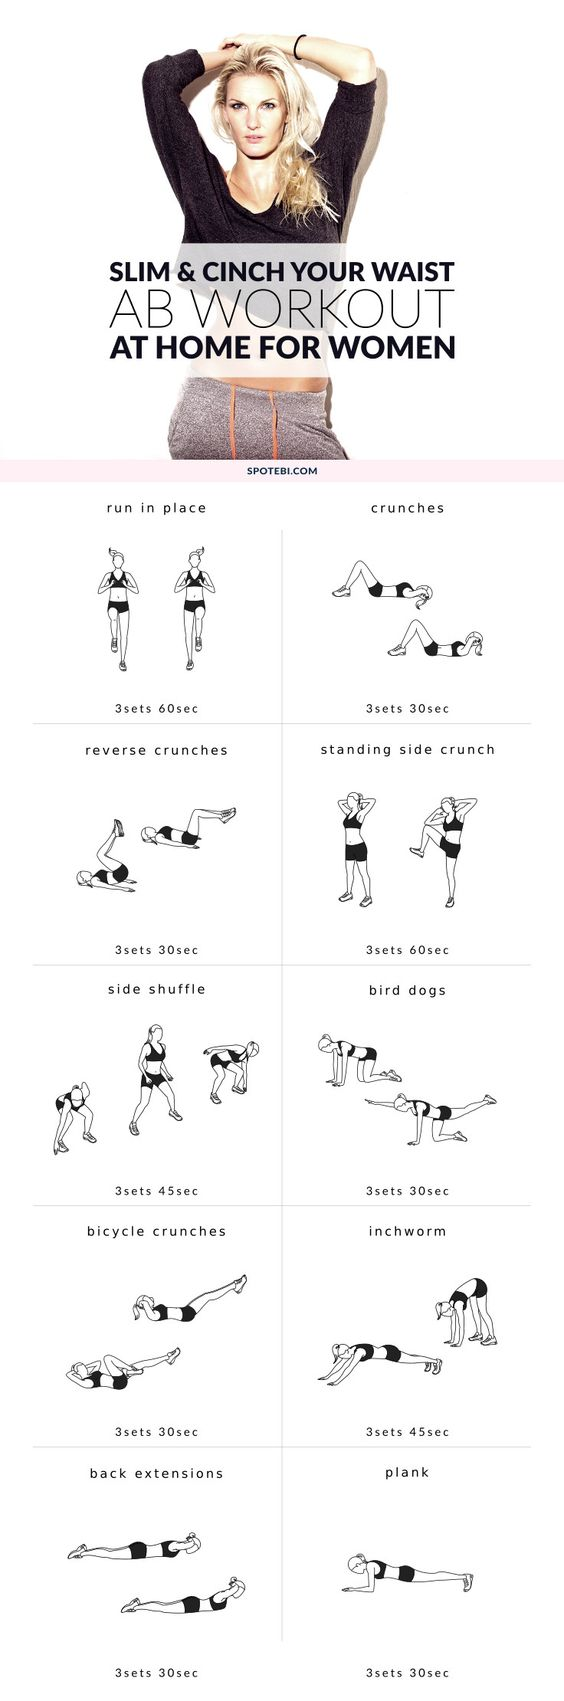 Challenge your midsection with this beginner ab workout for women. A complete core and cardio routine designed to trim and sculpt your abs, obliques and lower back. http://www.spotebi.com/workout-routines/beginner-ab-workout-for-women/